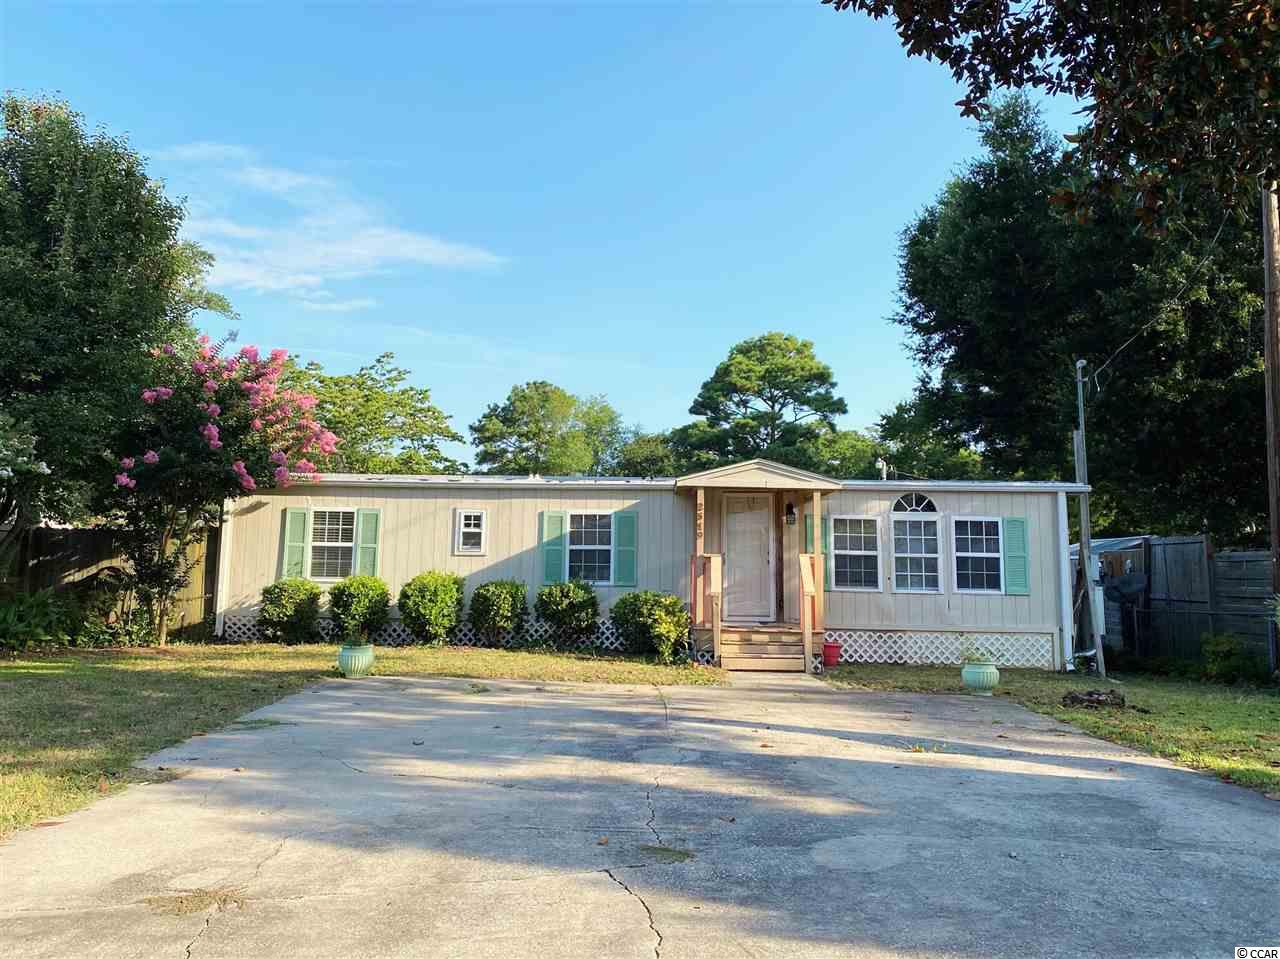 HANDY MAN SPECIAL!!! This property is being sold as is where is condition. This lot is a two sided street located in The Grove. This is a 1974 double wide manufactured home. Two sheds on the property for plenty of storage. Just an estimate of 5 minutes from the beach! NO HOA'S!!! This home is located near all shops, restaurants, golf, and entertainment North Myrtle Beach, SC has to offer. Buyer is responsible for all measurement verification.